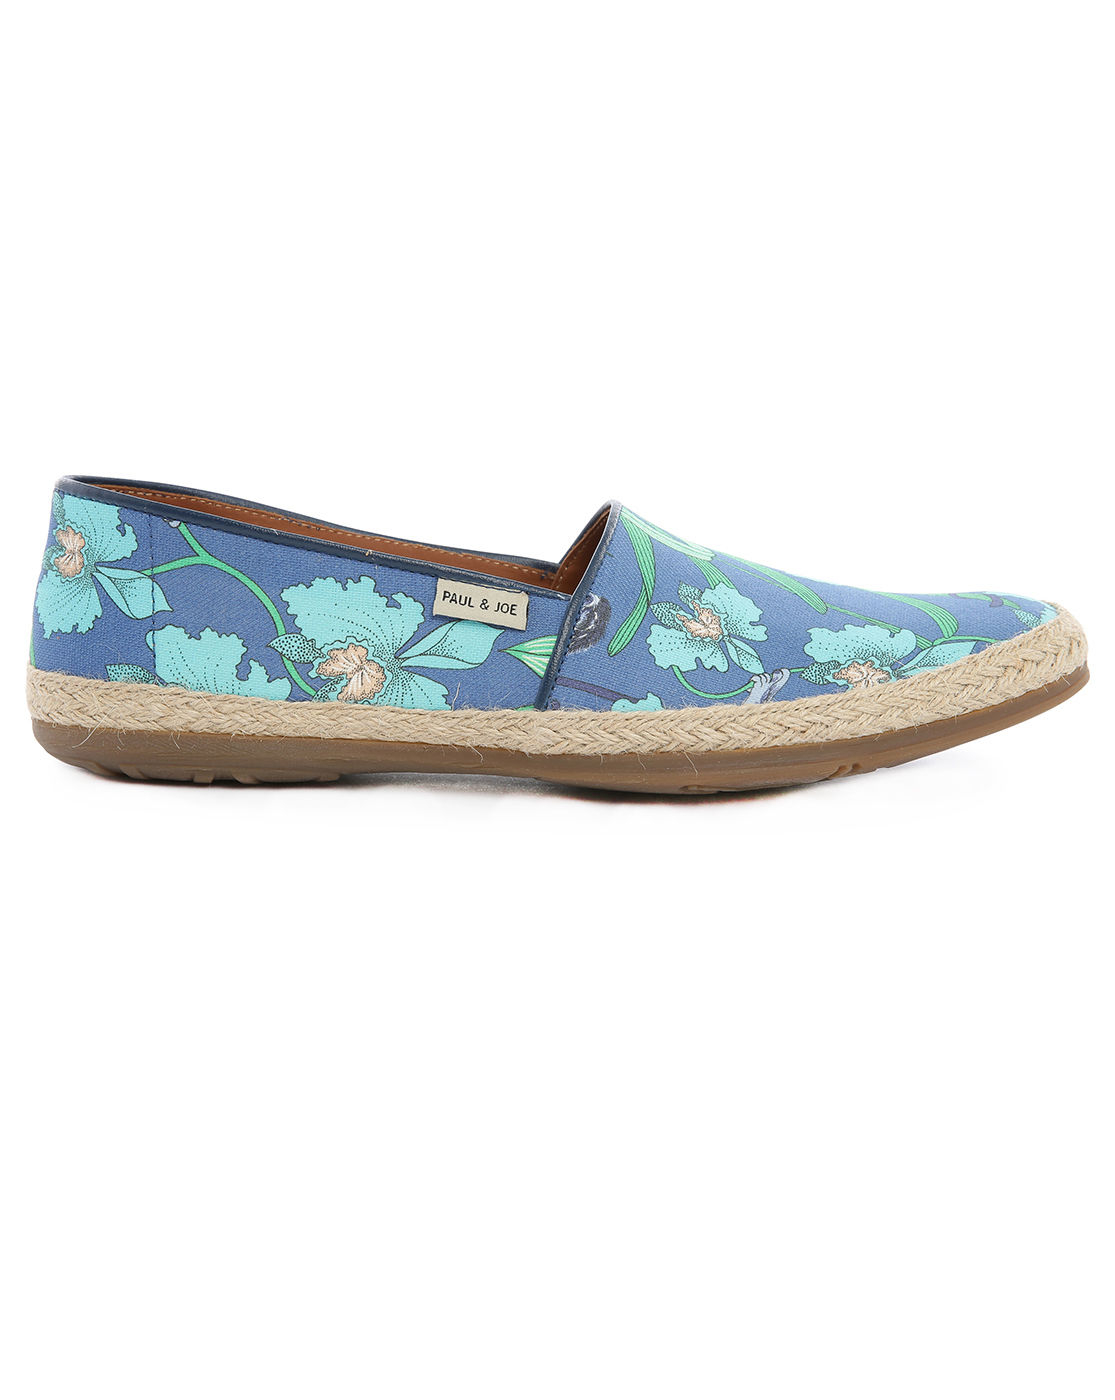 Paul & joe St Espa Leaf Print Espadrille in Blue for Men ...